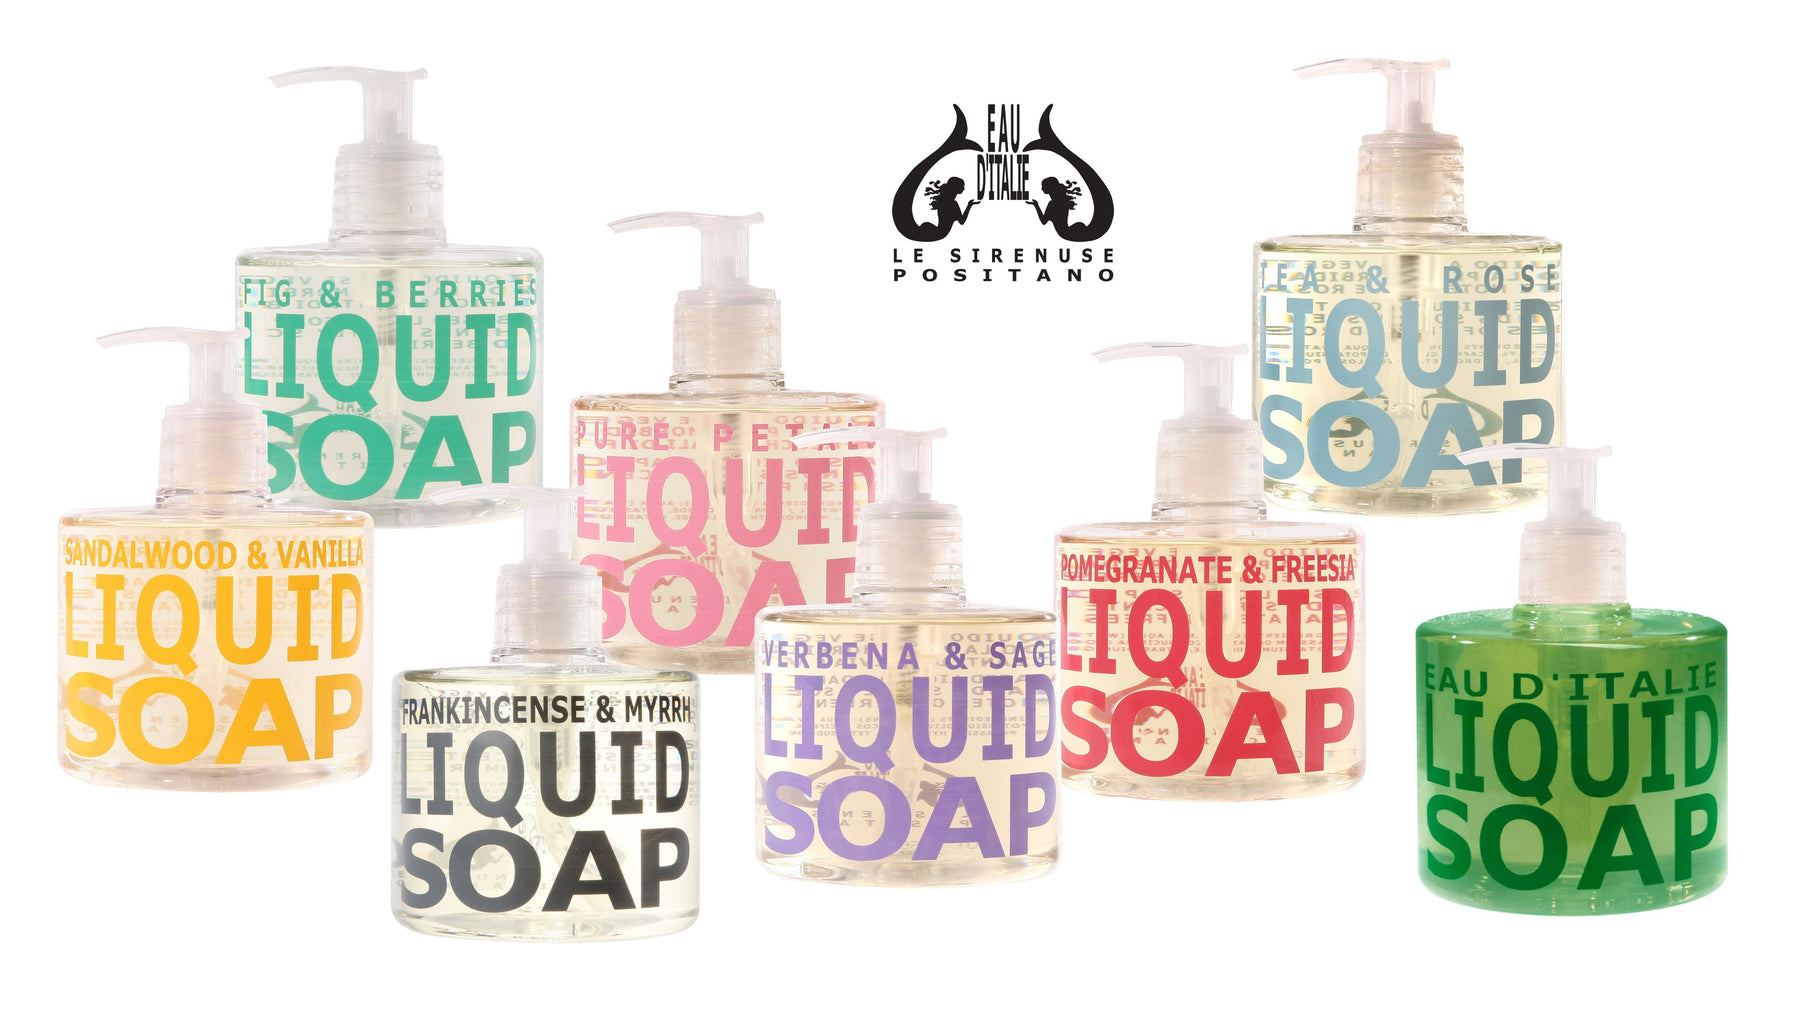 The Eau d'Italie Collection of Liquid Soaps